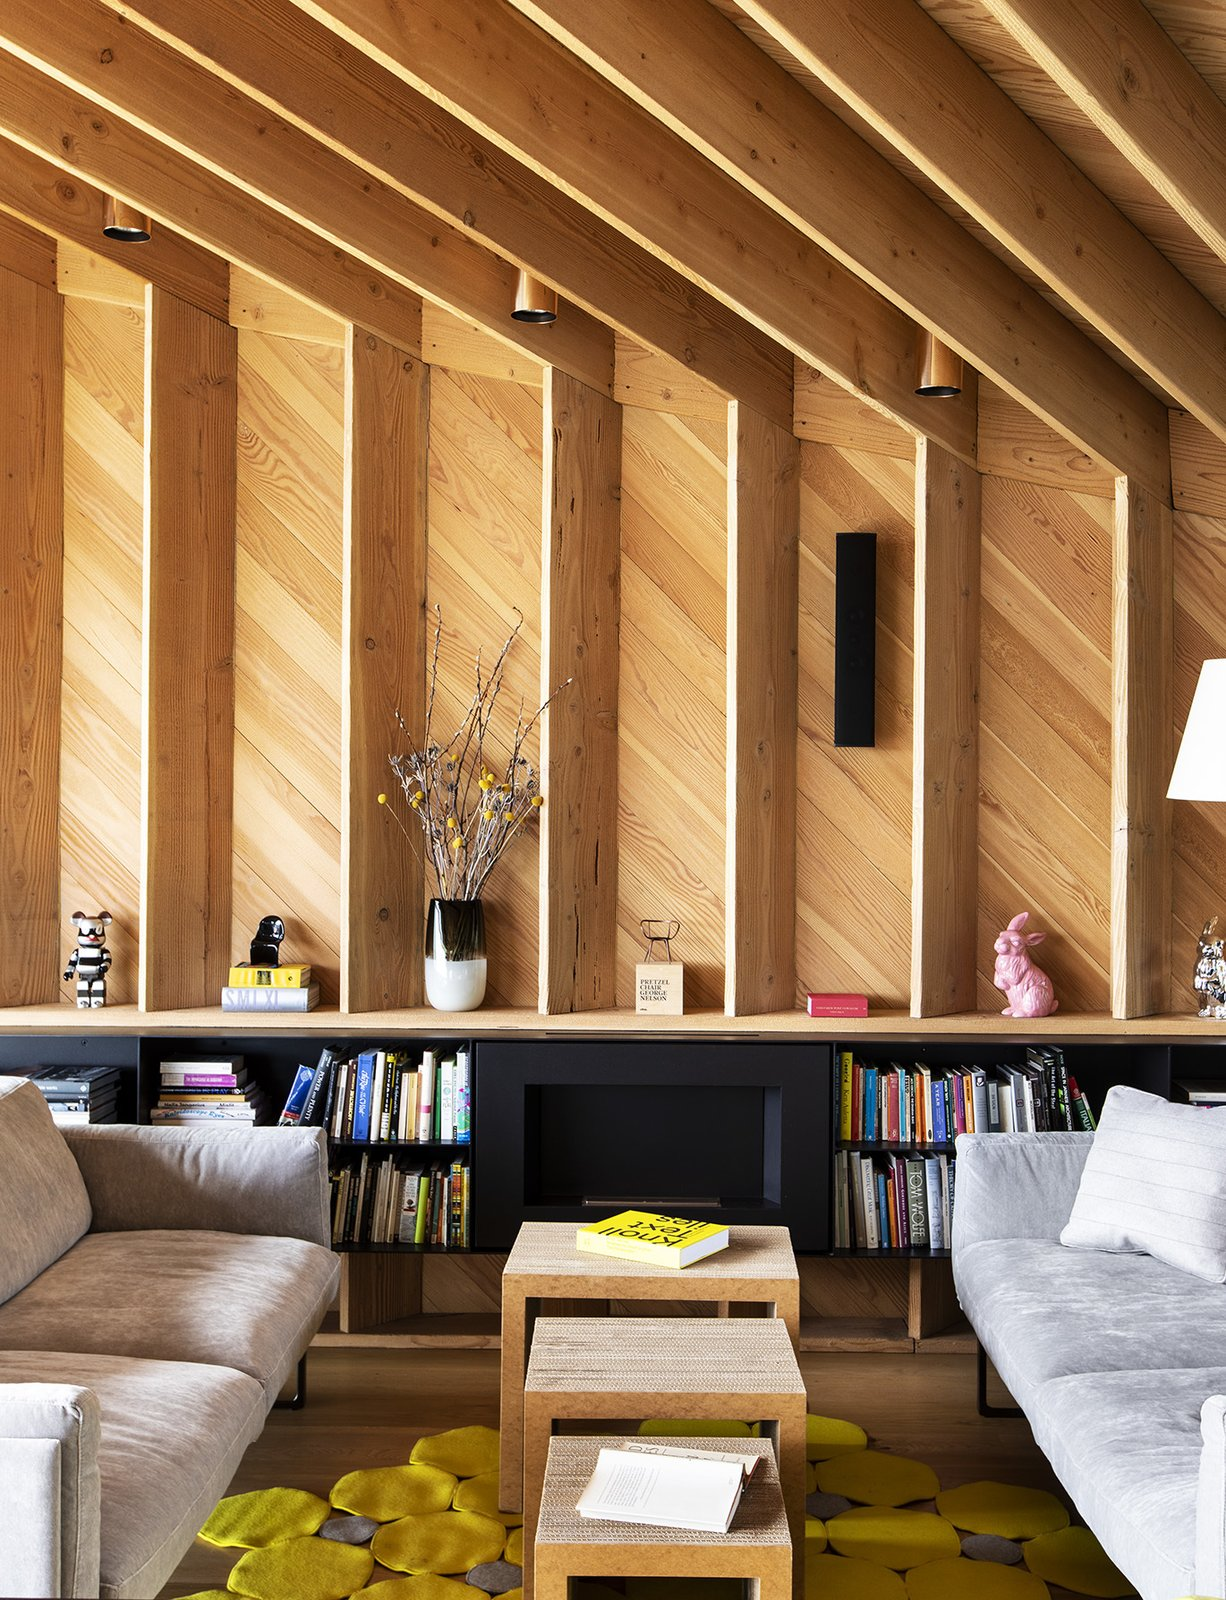 Wilkinson Residence-Clive Wilkinson Architects